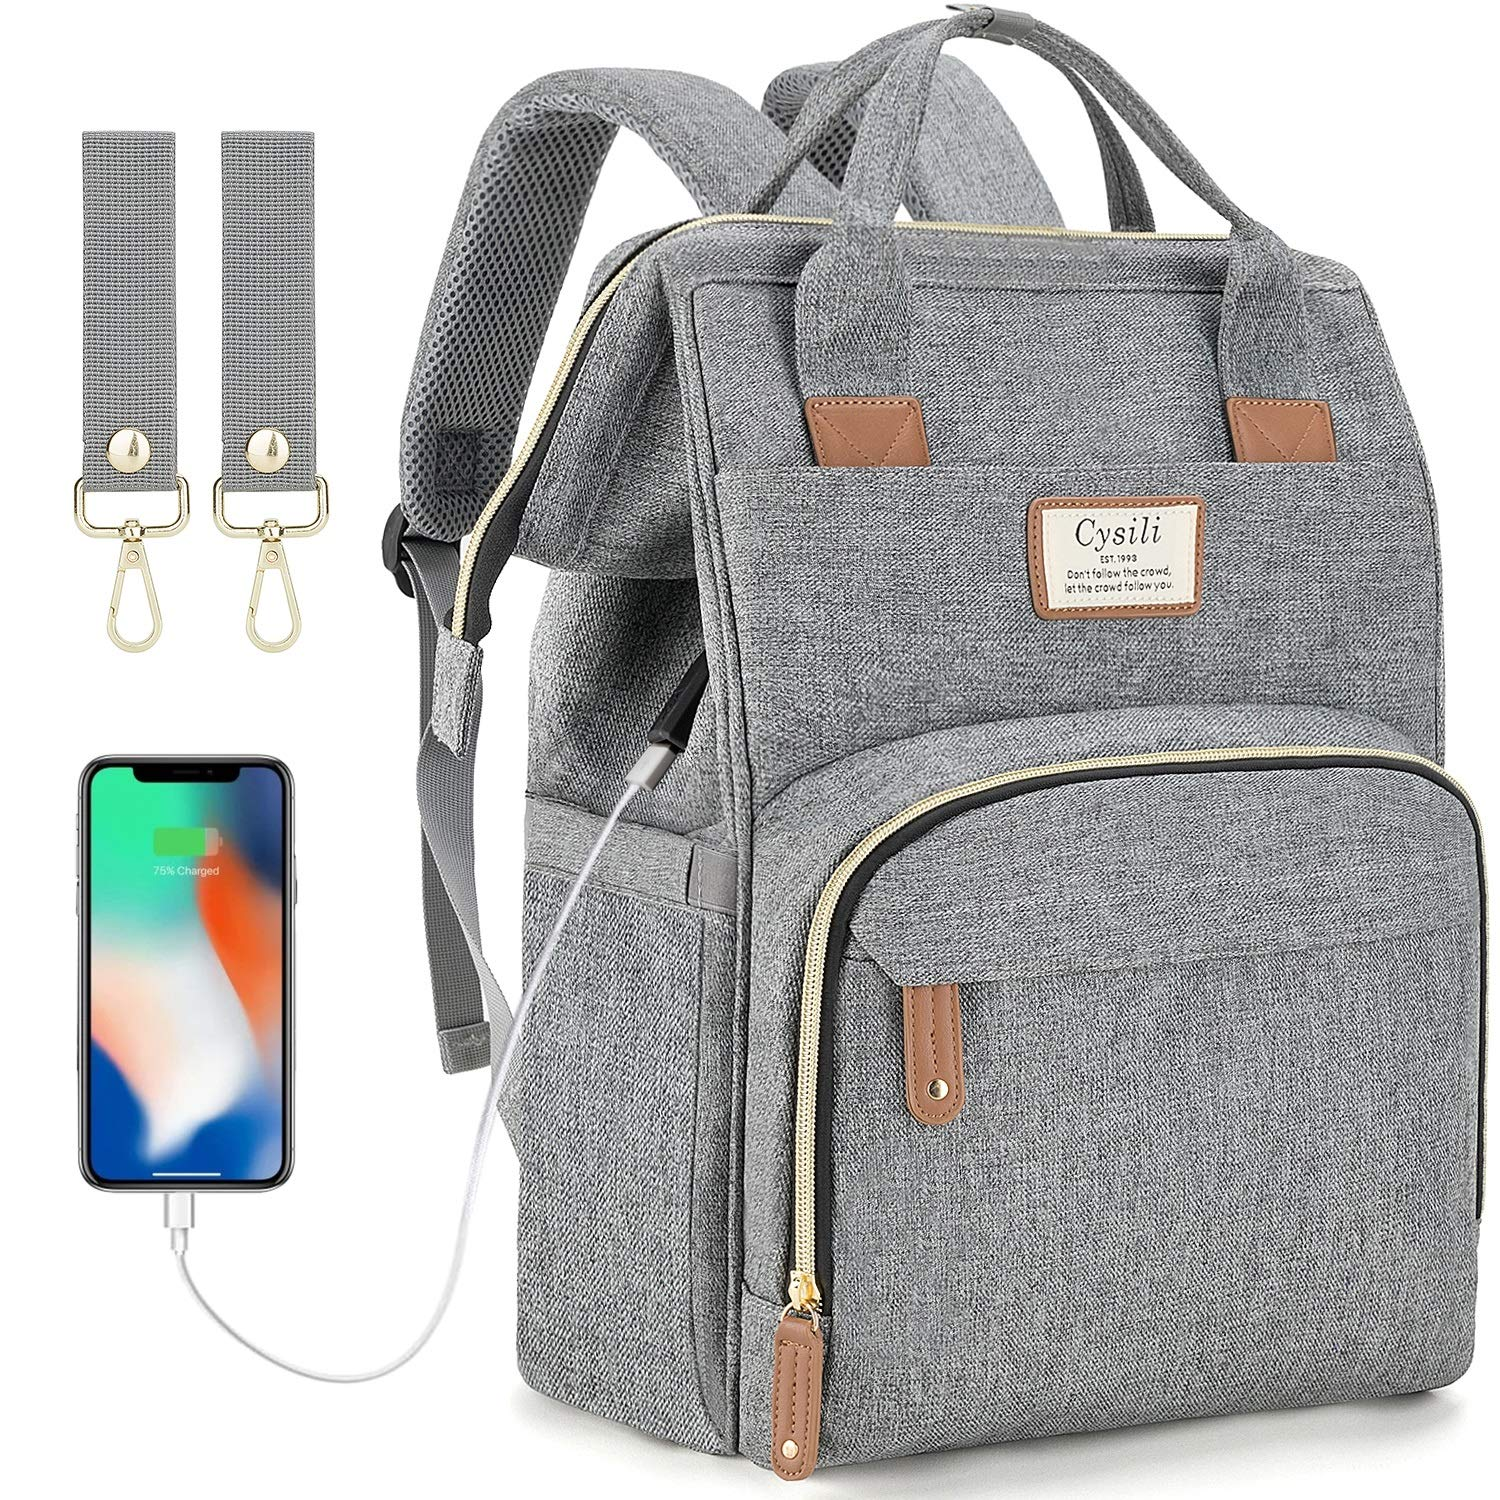 Diaper Bag Backpack with USB Charging Port and Stroller Straps, Maternity Nappy Bag with Insulated Feeding Bottle Pocket (Grey)